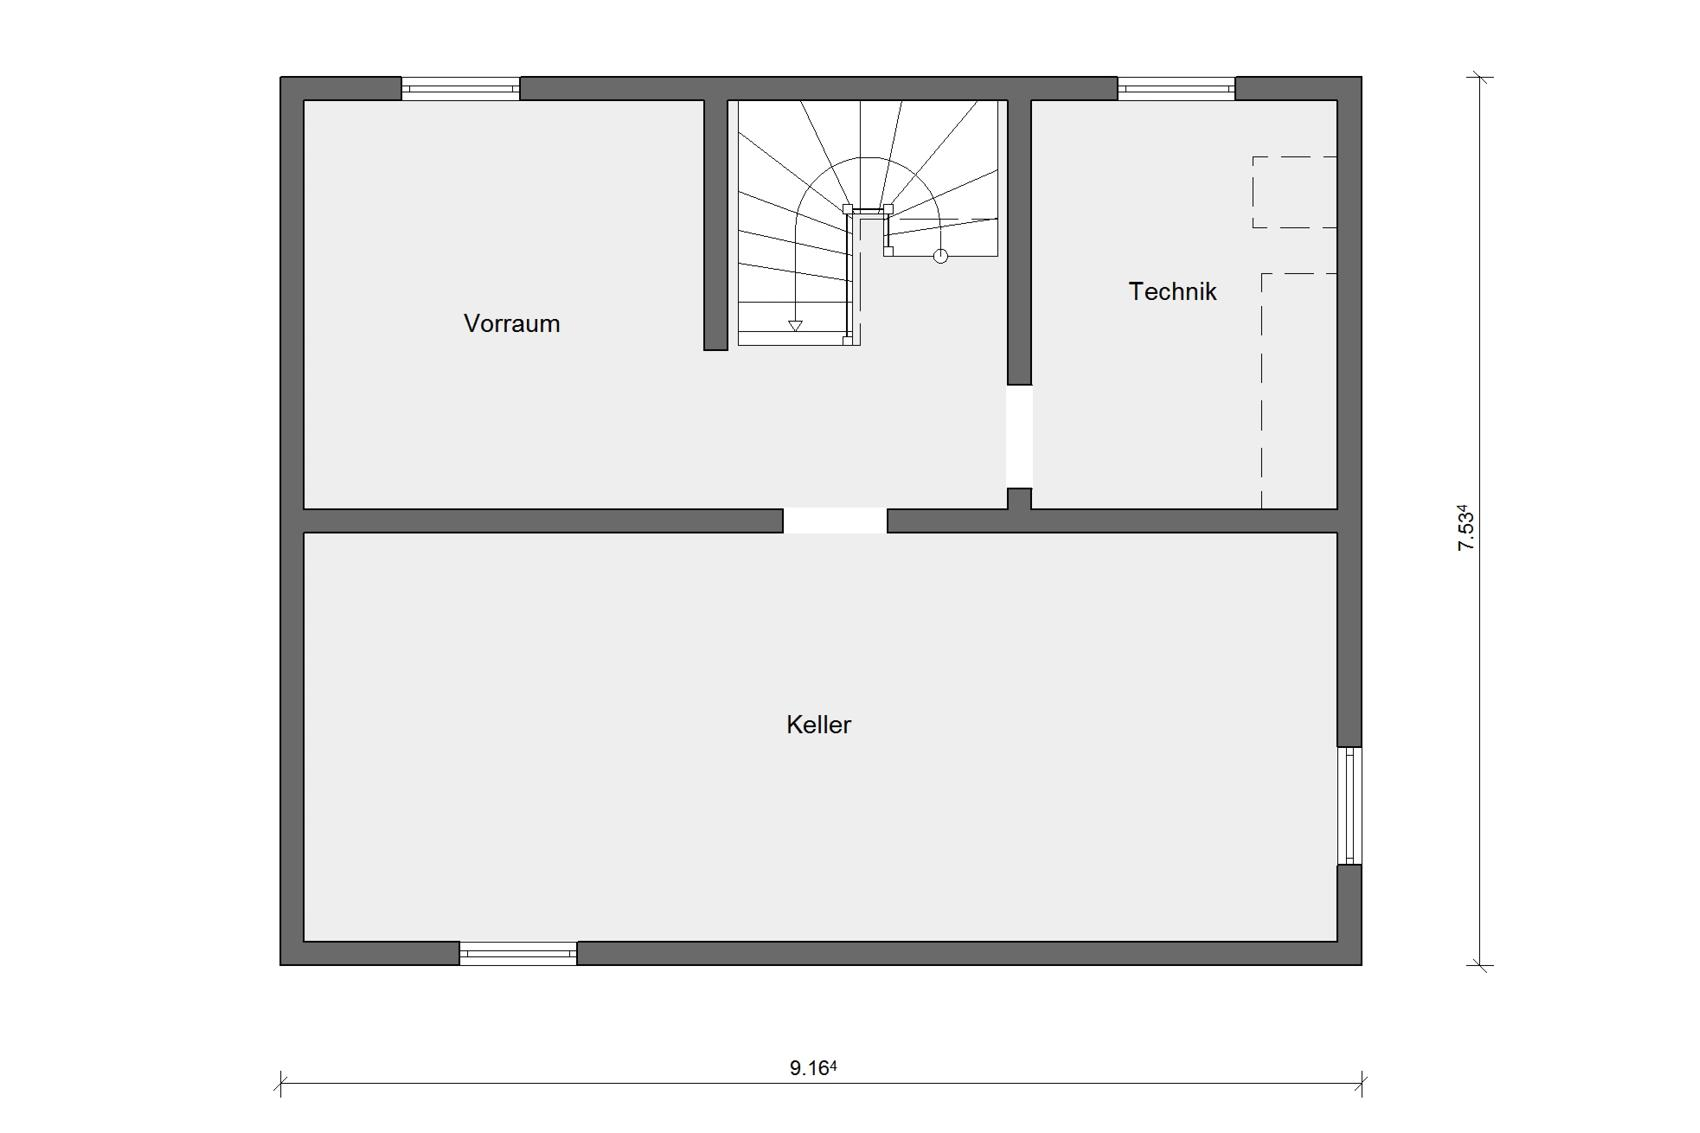 Floor plan basement E 15-121.9 House with pitched roof